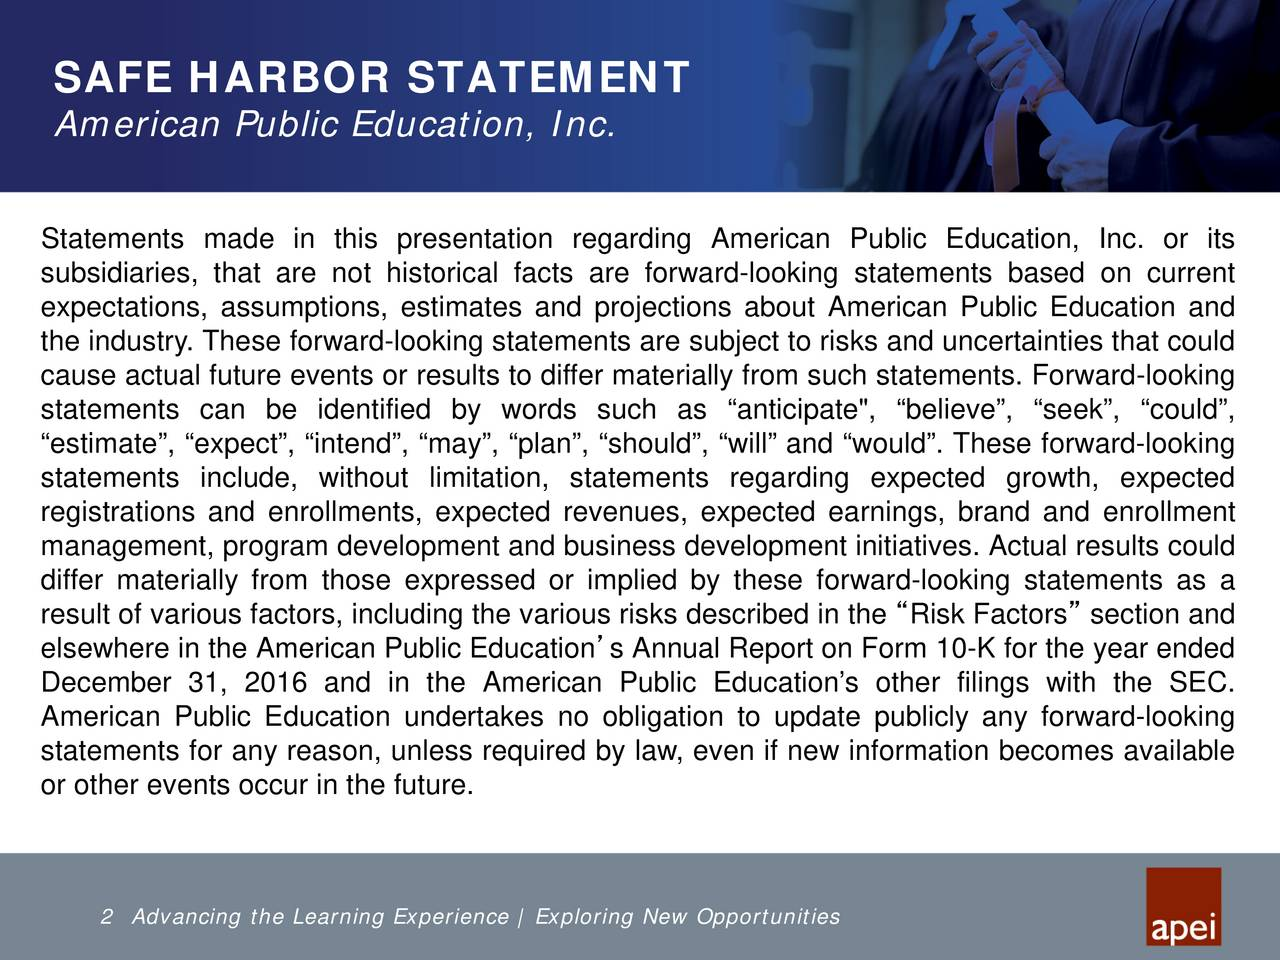 """American Public Education, Inc. Statements made in this presentation regarding American Public Education, Inc. or its subsidiaries, that are not historical facts are forward-looking statements based on current expectations, assumptions, estimates and projections about American Public Education and the industry. These forward-looking statements are subject to risks and uncertainties that could cause actual future events or results to differ materially from such statements. Forward-looking statements can be identified by words such as anticipate"""", believe, seek, could, estimate, expect, intend, may, plan, should, will and would. These forward-looking statements include, without limitation, statements regarding expected growth, expected registrations and enrollments, expected revenues, expected earnings, brand and enrollment management, program development and business development initiatives. Actual results could differ materially from those expressed or implied by these forward-looking statements as a result of various factors, including the various risks described in the Risk Factors section and elsewhere in the American Public Educations Annual Report on Form 10-K for the year ended December 31, 2016 and in the American Public Educations other filings with the SEC. American Public Education undertakes no obligation to update publicly any forward-looking statements for any reason, unless required by law,even if new information becomes available or other events occur in the future. 2 Advancing the Learning Experience 